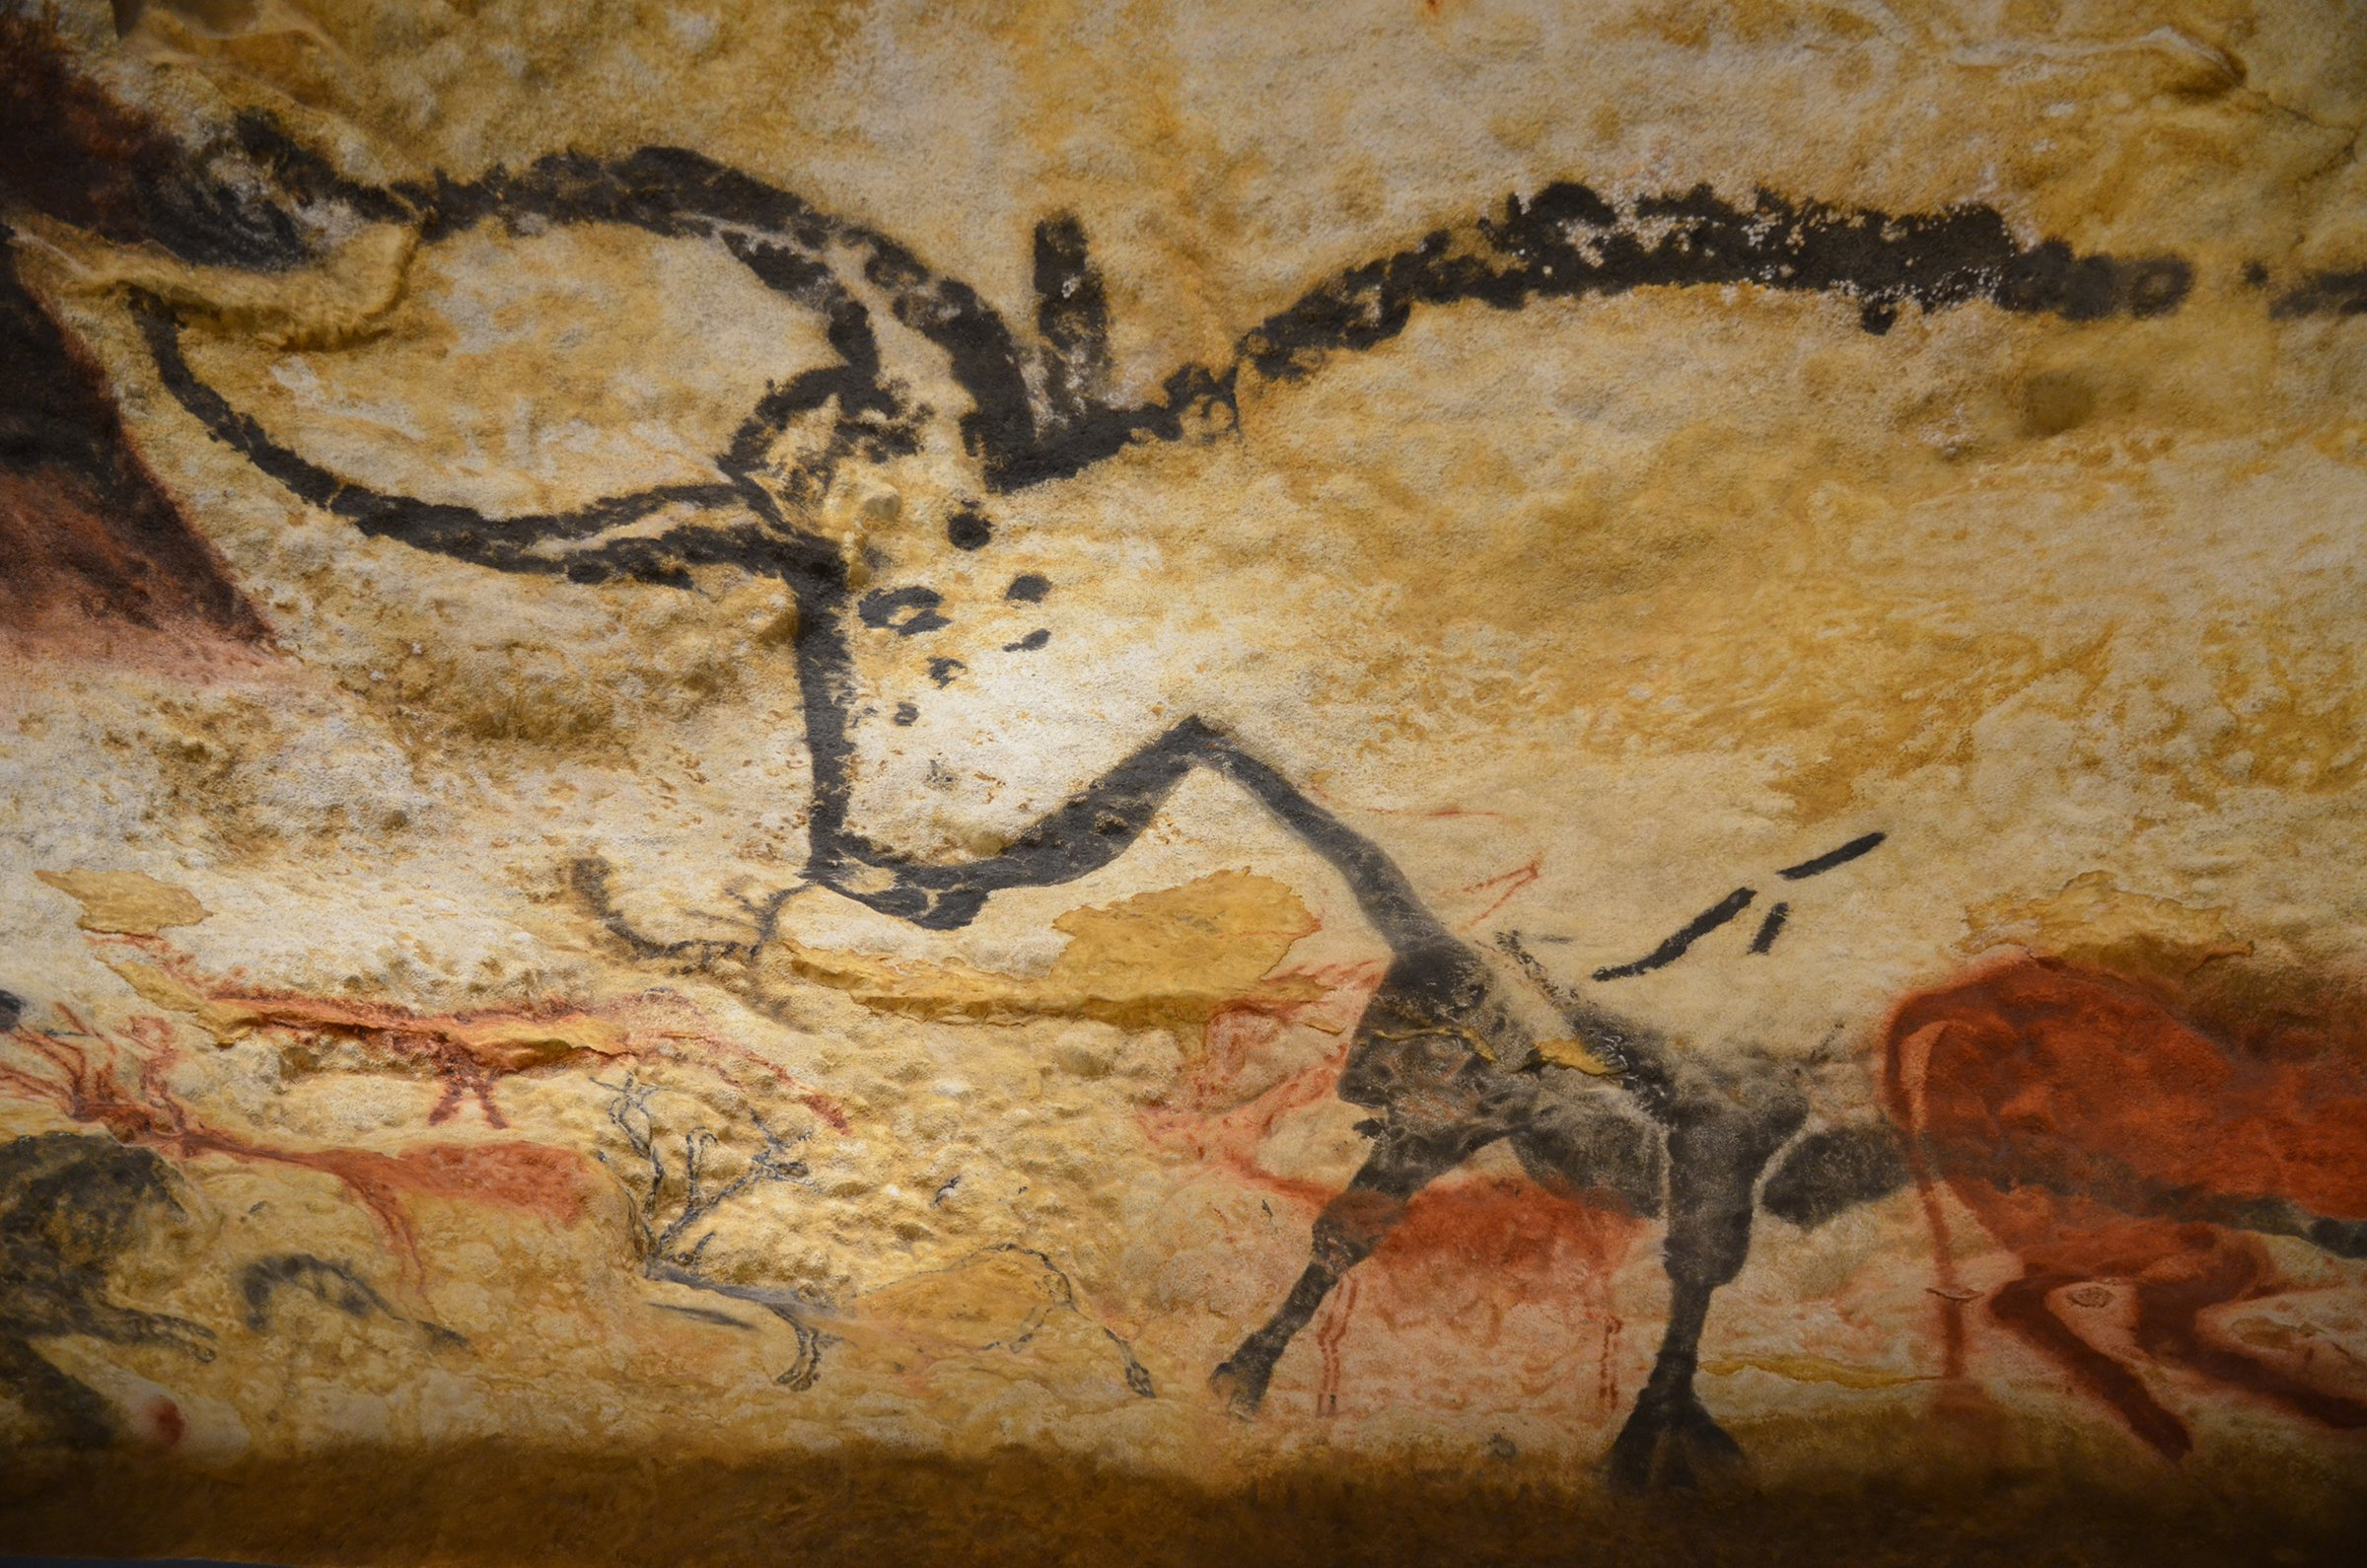 Cave Paining in Lascaux Cave in the Dordogne region of France